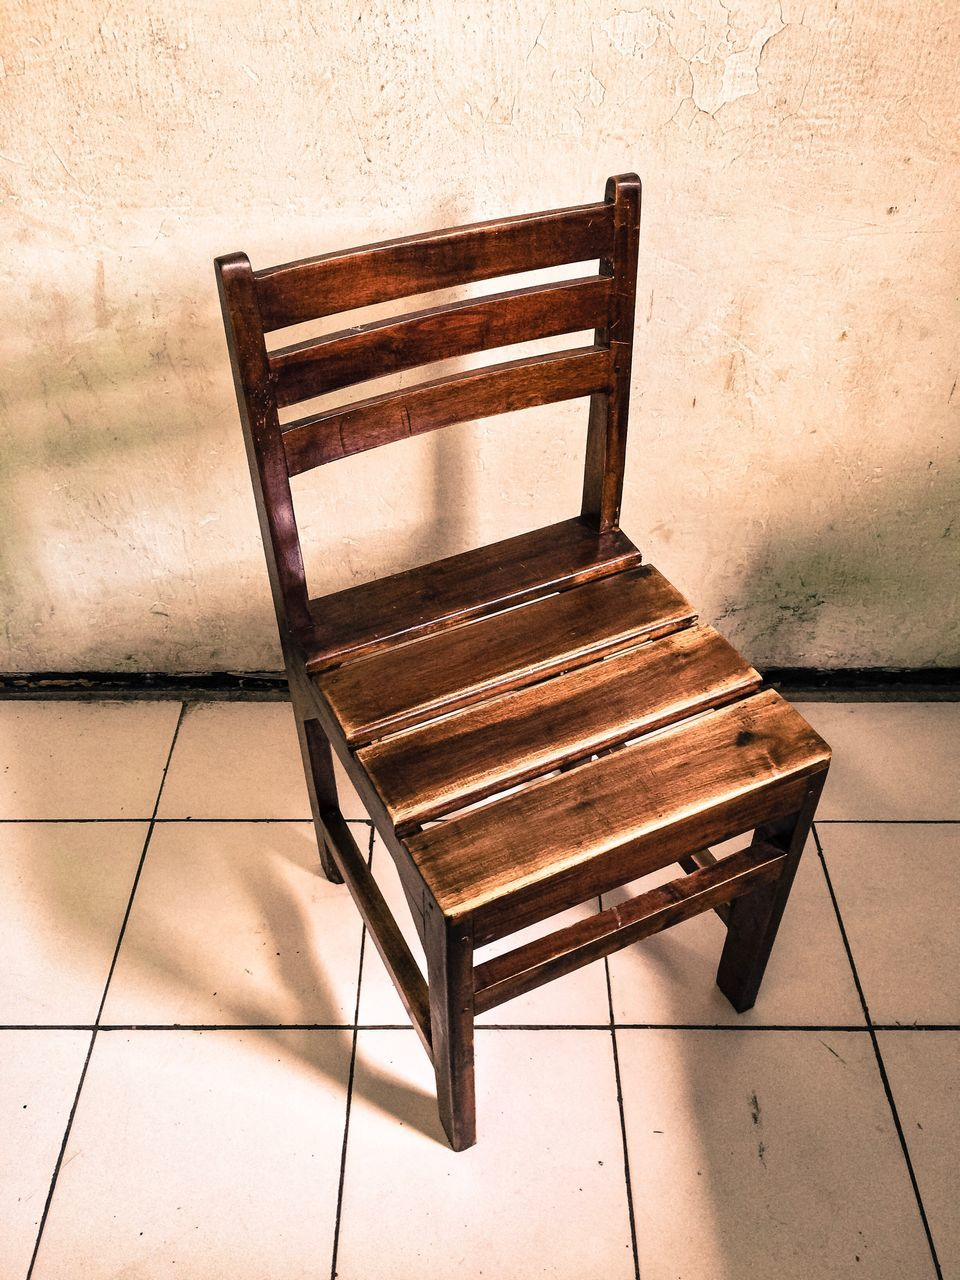 chair, no people, wood - material, table, abandoned, indoors, day, architecture, close-up